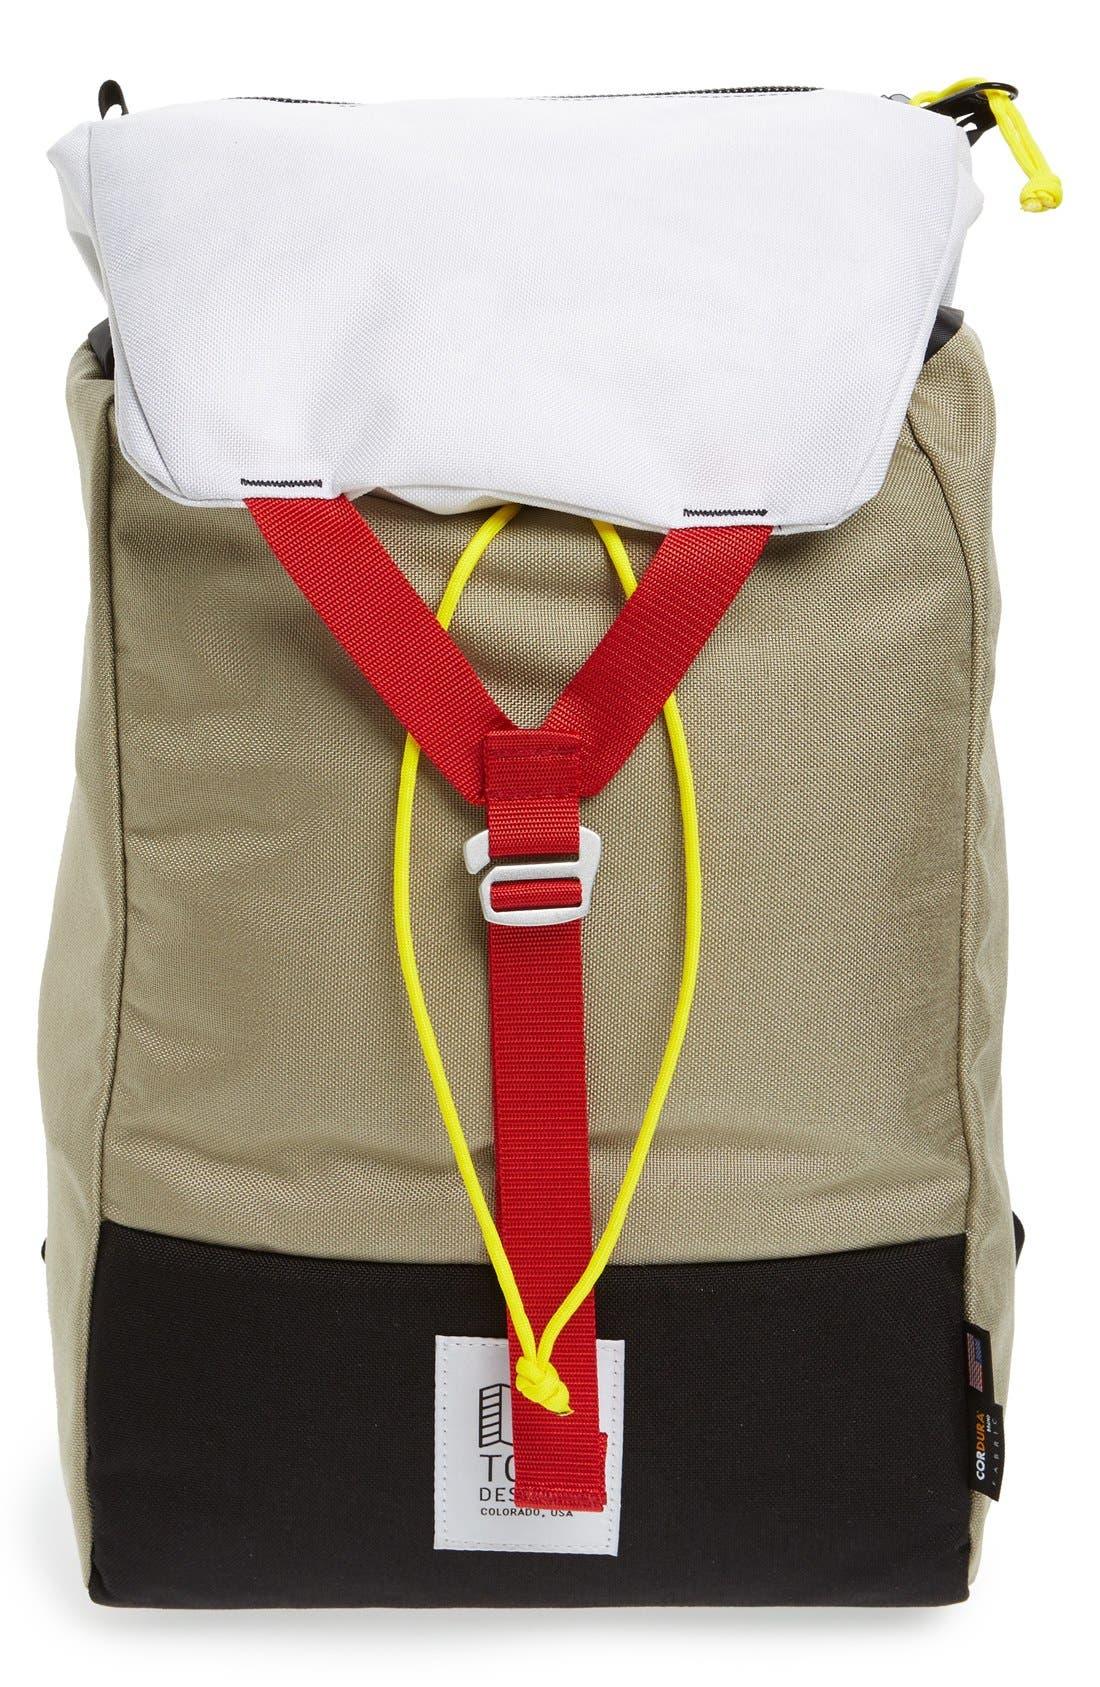 TOPO DESIGNS 'Y-Pack' Backpack, Main, color, 031